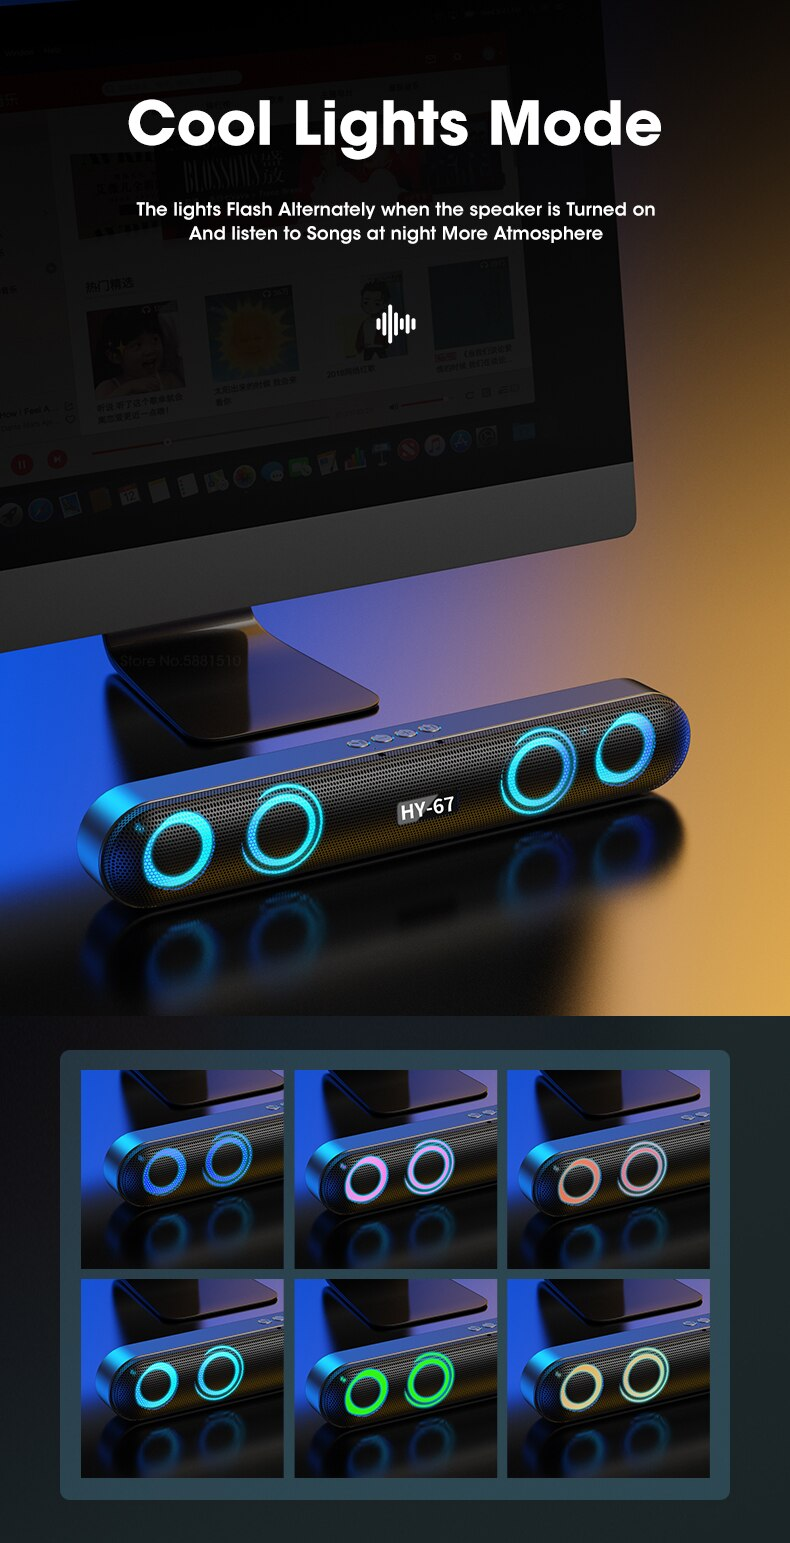 H11a9f4b116d14fa49a764ed325e78cb5f - Computer Soundbar Desktop Bluetooth Speakers Rechargeable 6D Deep Bass Stereo Subwoofer AUX Wired For Laptop PC TV Loudspeaker